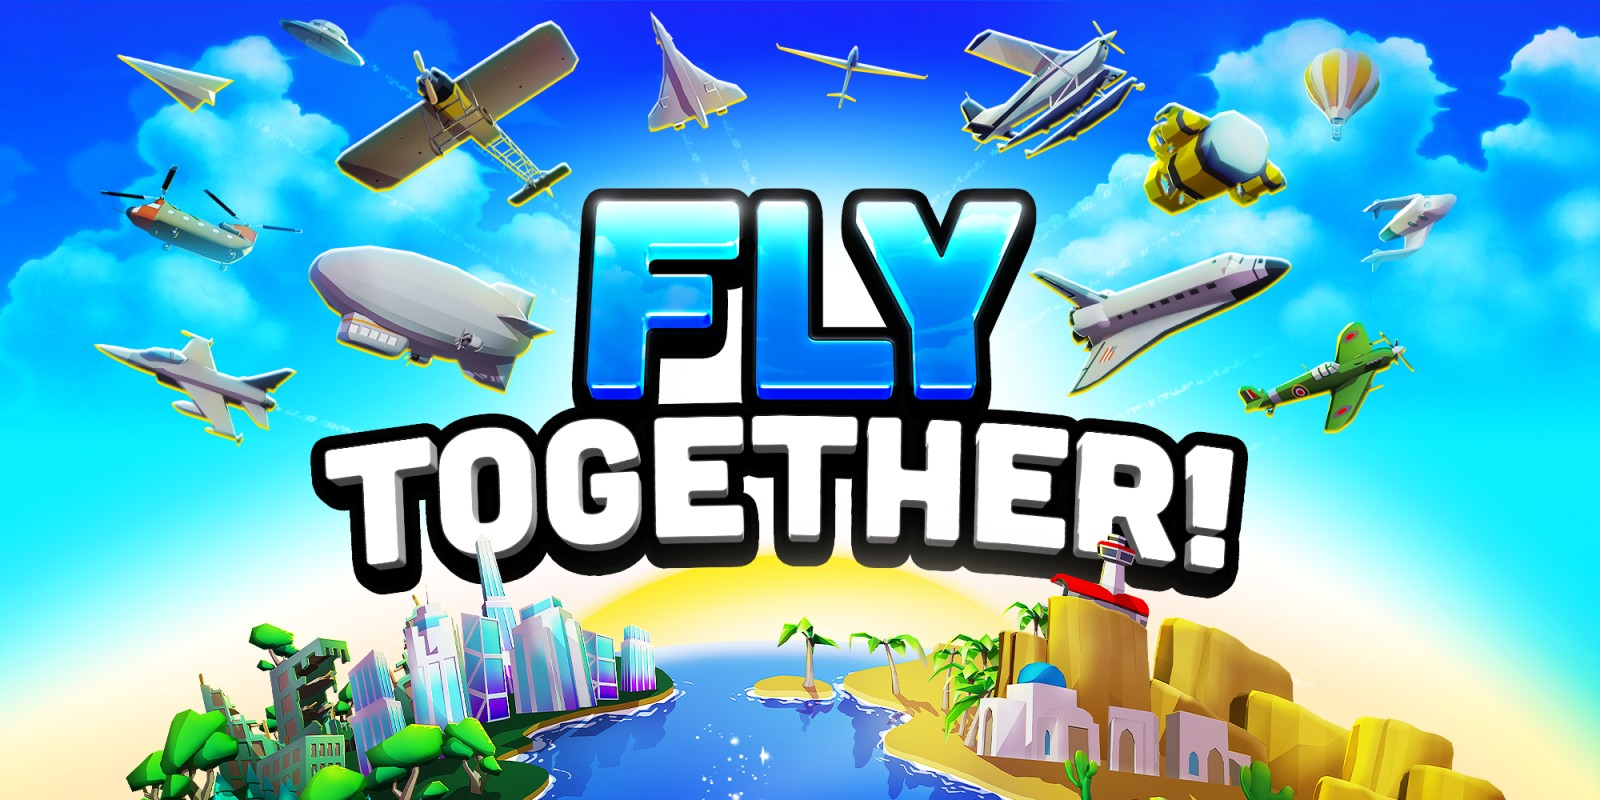 Fly TOGETHER!